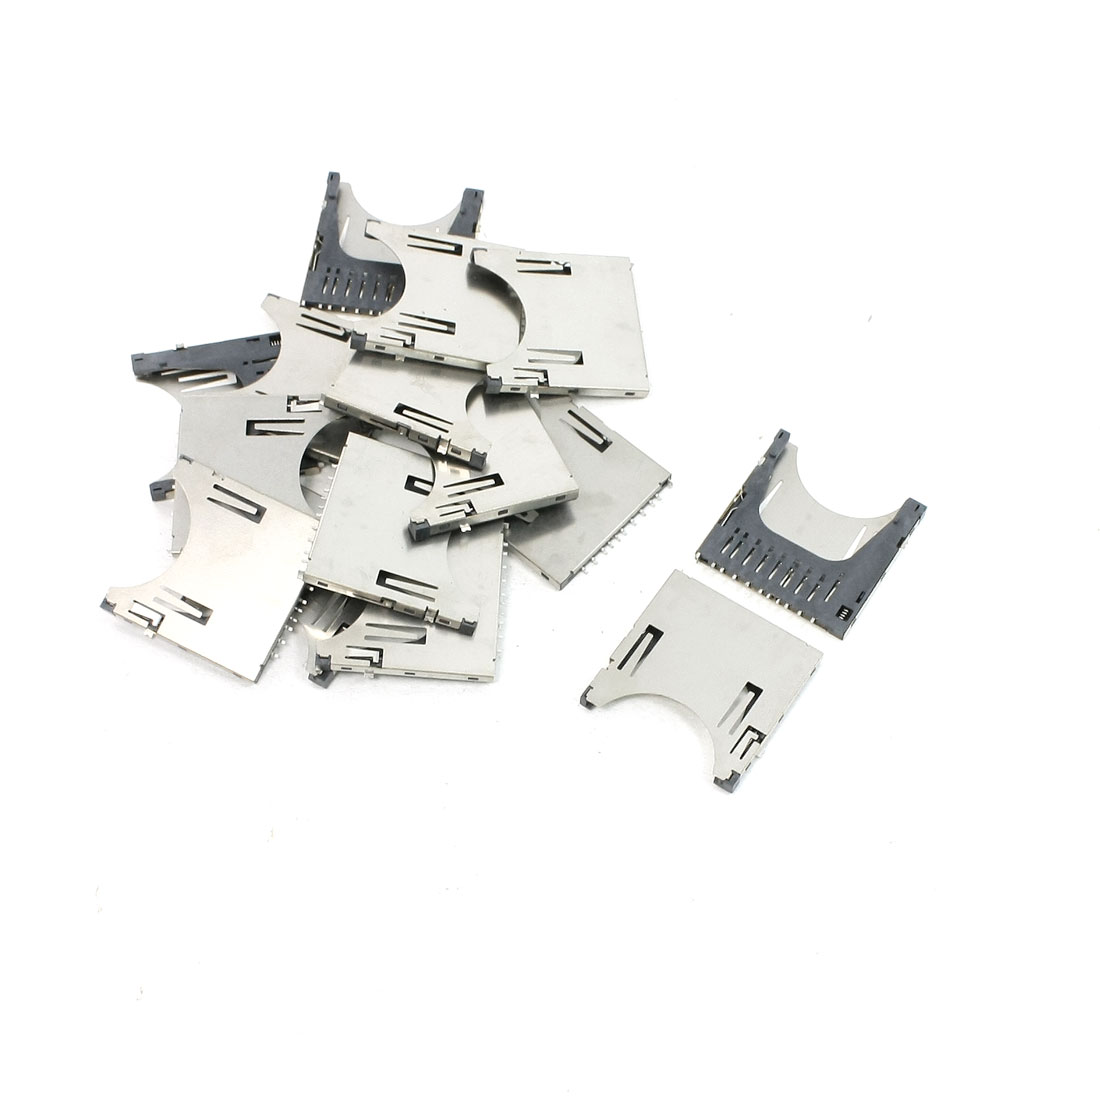 "15 Pcs SD Memory Card Sockets 1.14"" x 1.12"" x 0.1"" for Digital Camera"